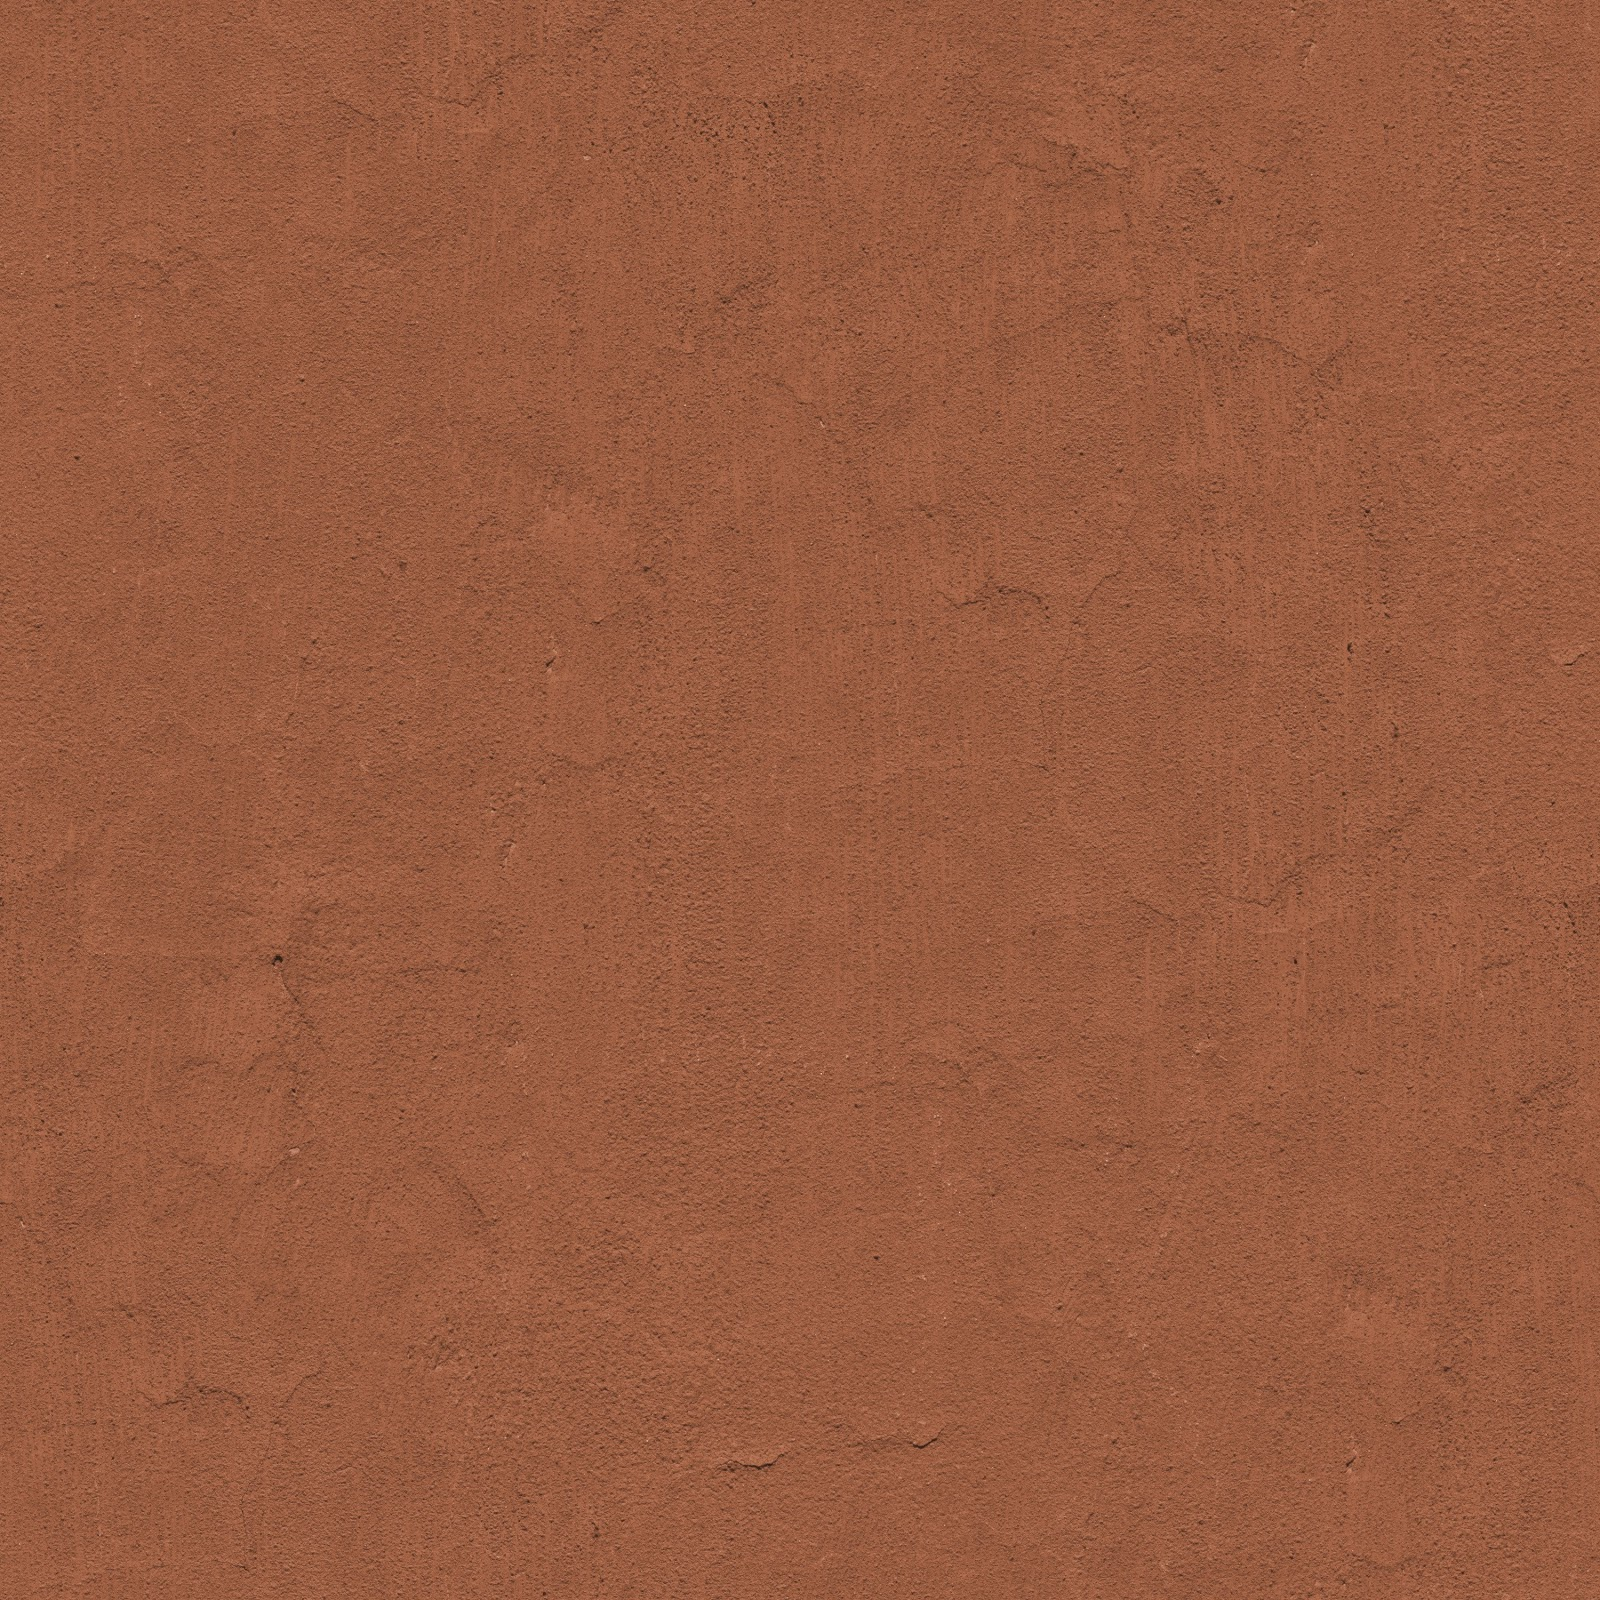 (Stucco 4) brown plaster wall paper seamless texture 4